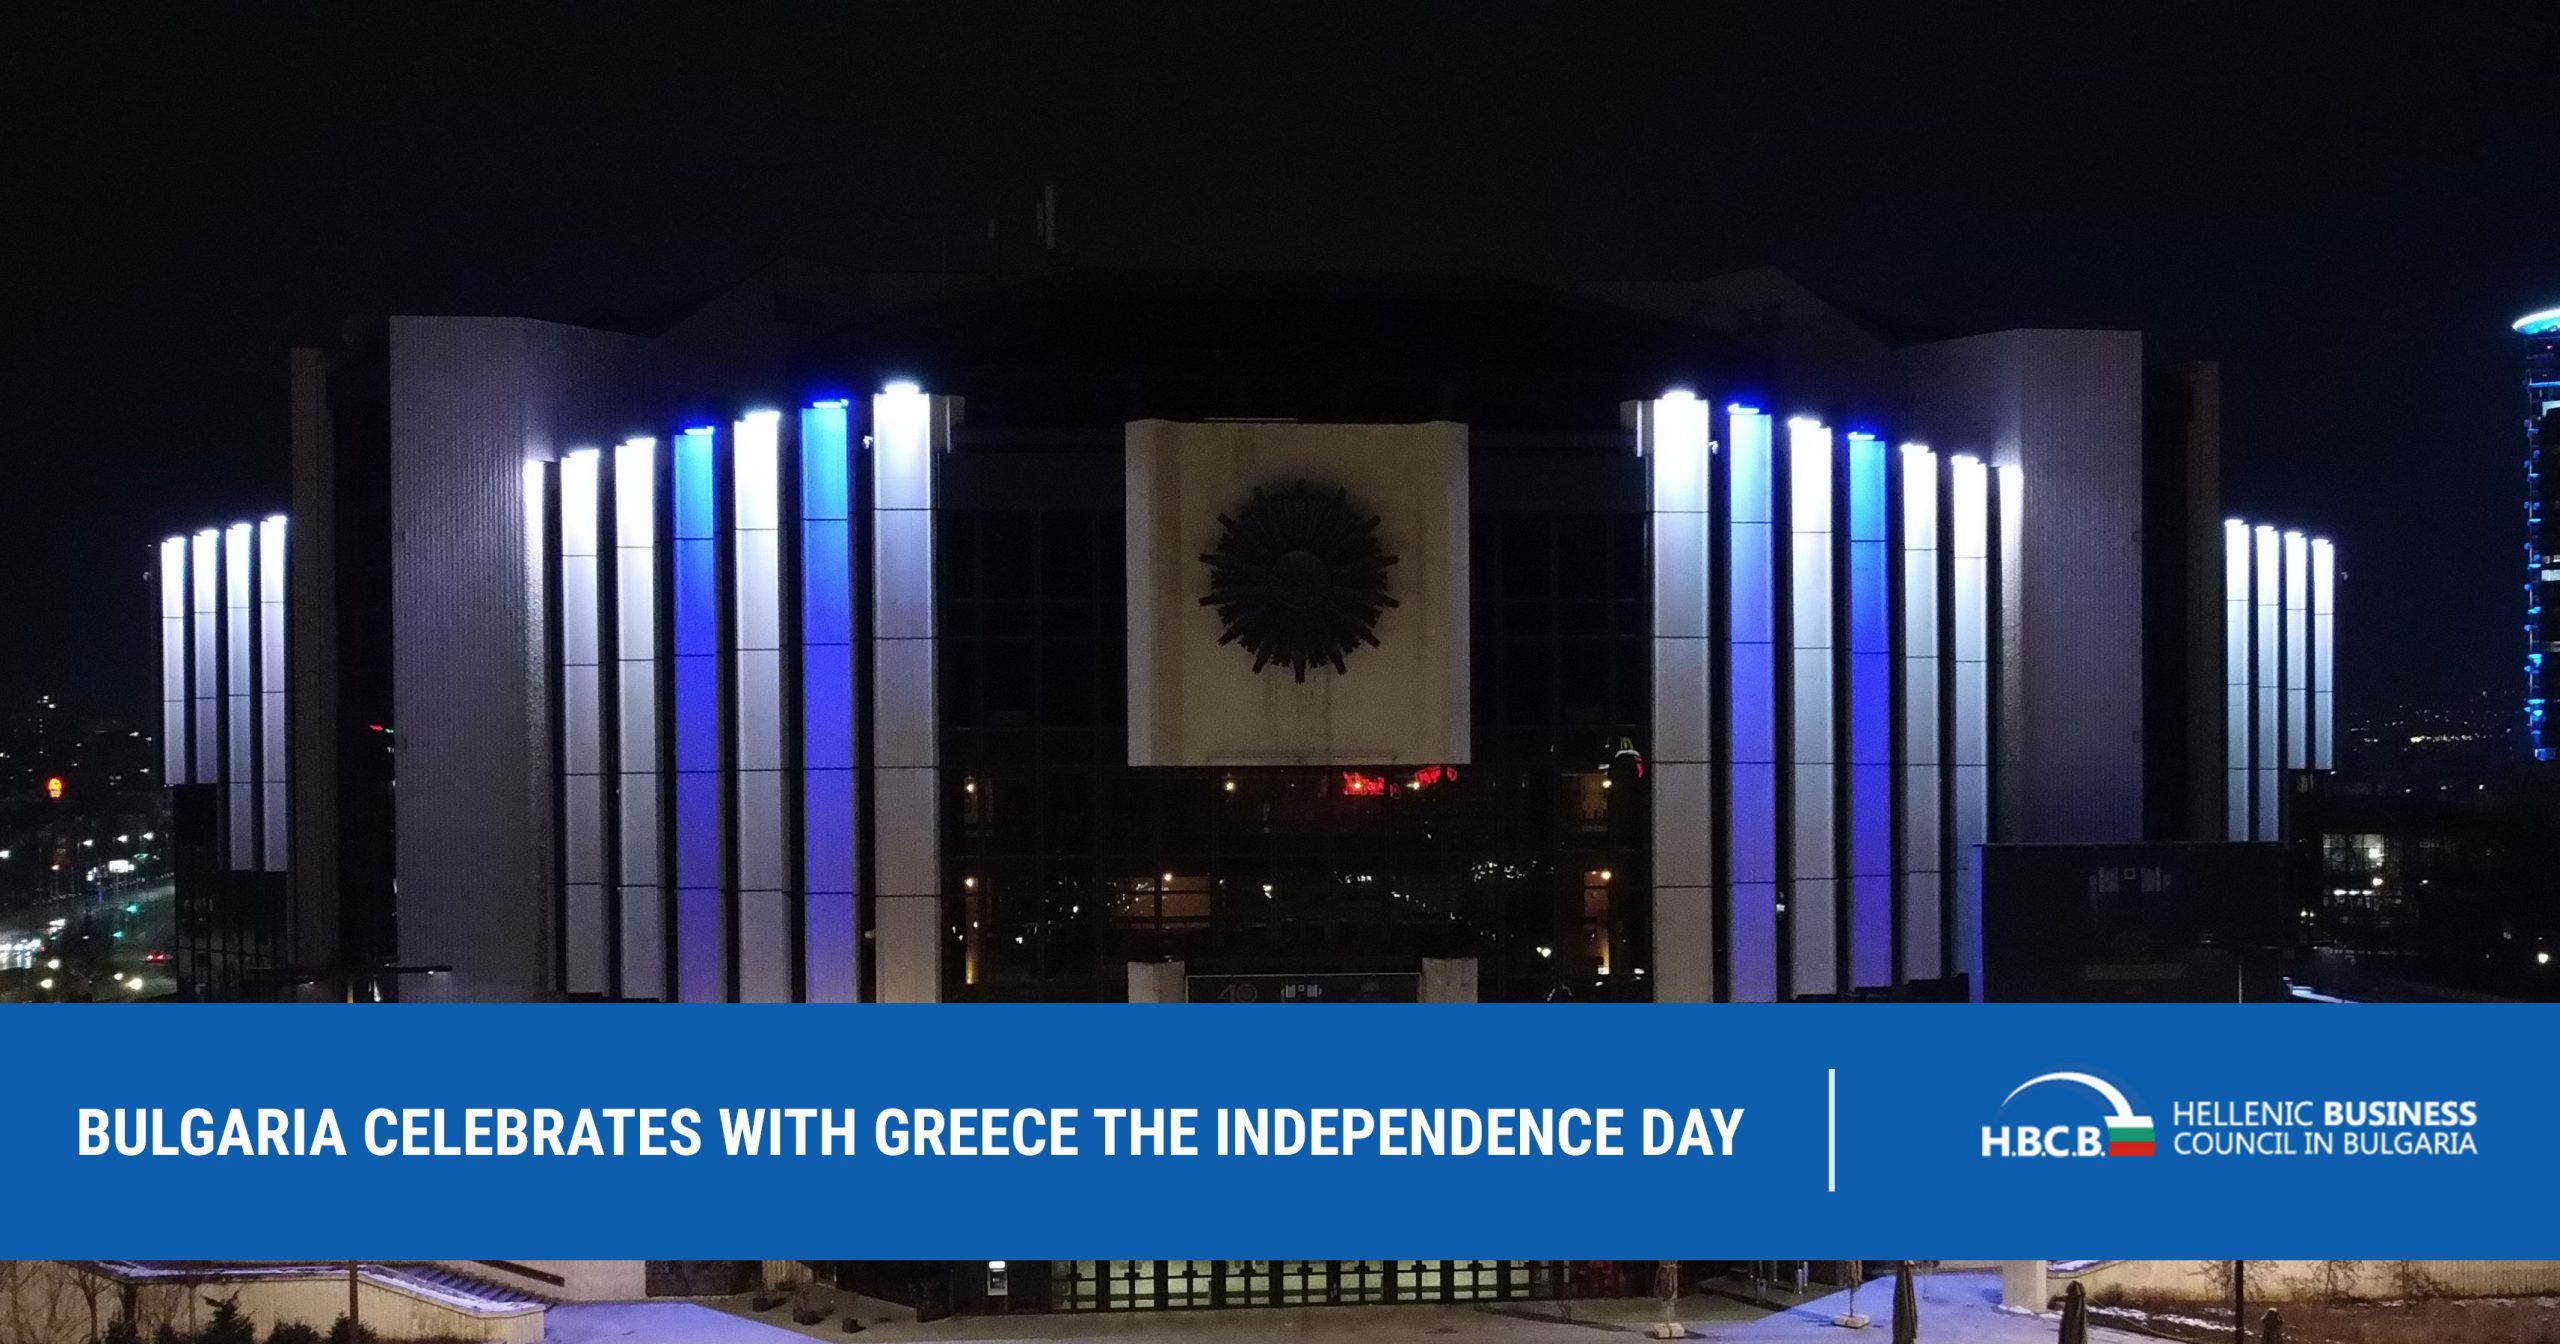 Bulgaria celebrates with Greece the Independence day